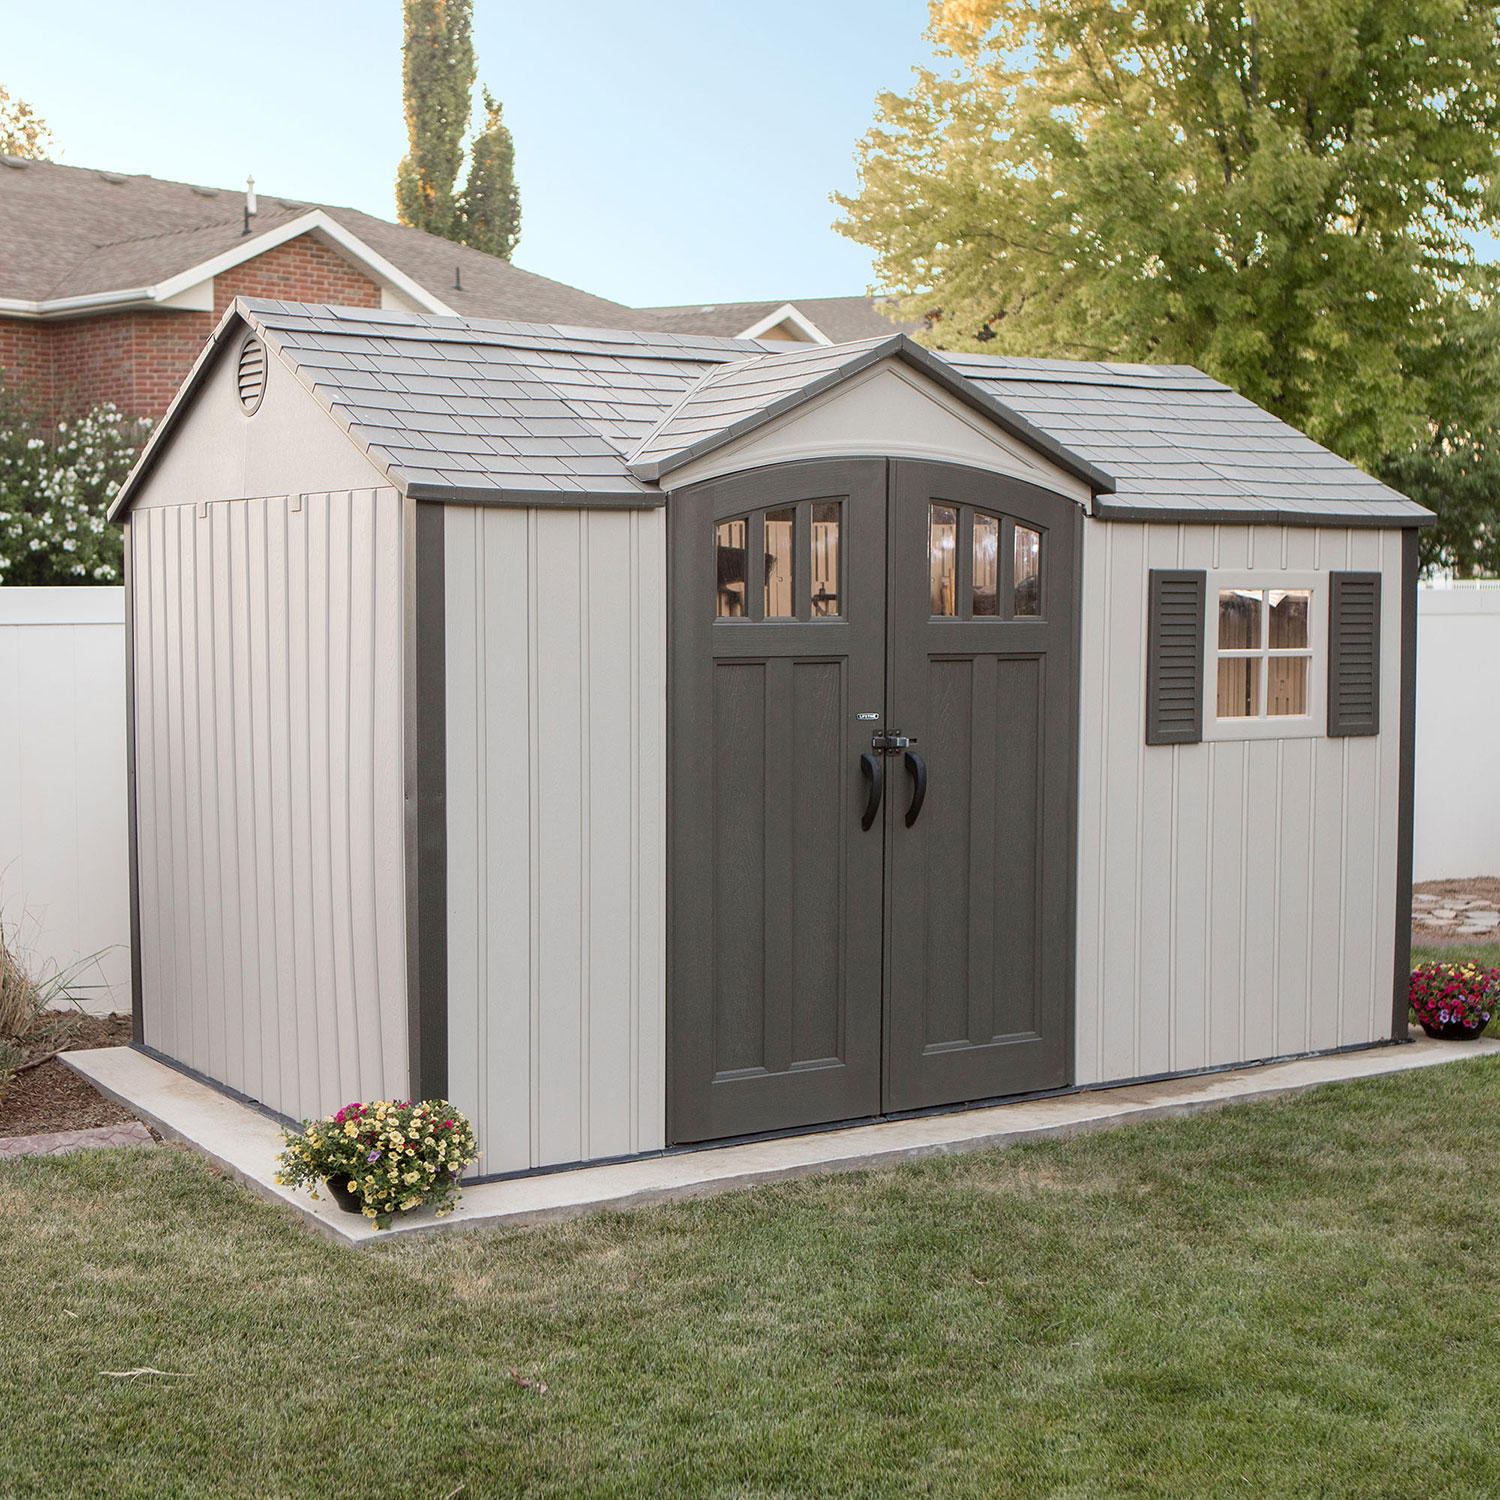 Lifetime (980025371) 12.5′ x 8′ Outdoor Storage Shed